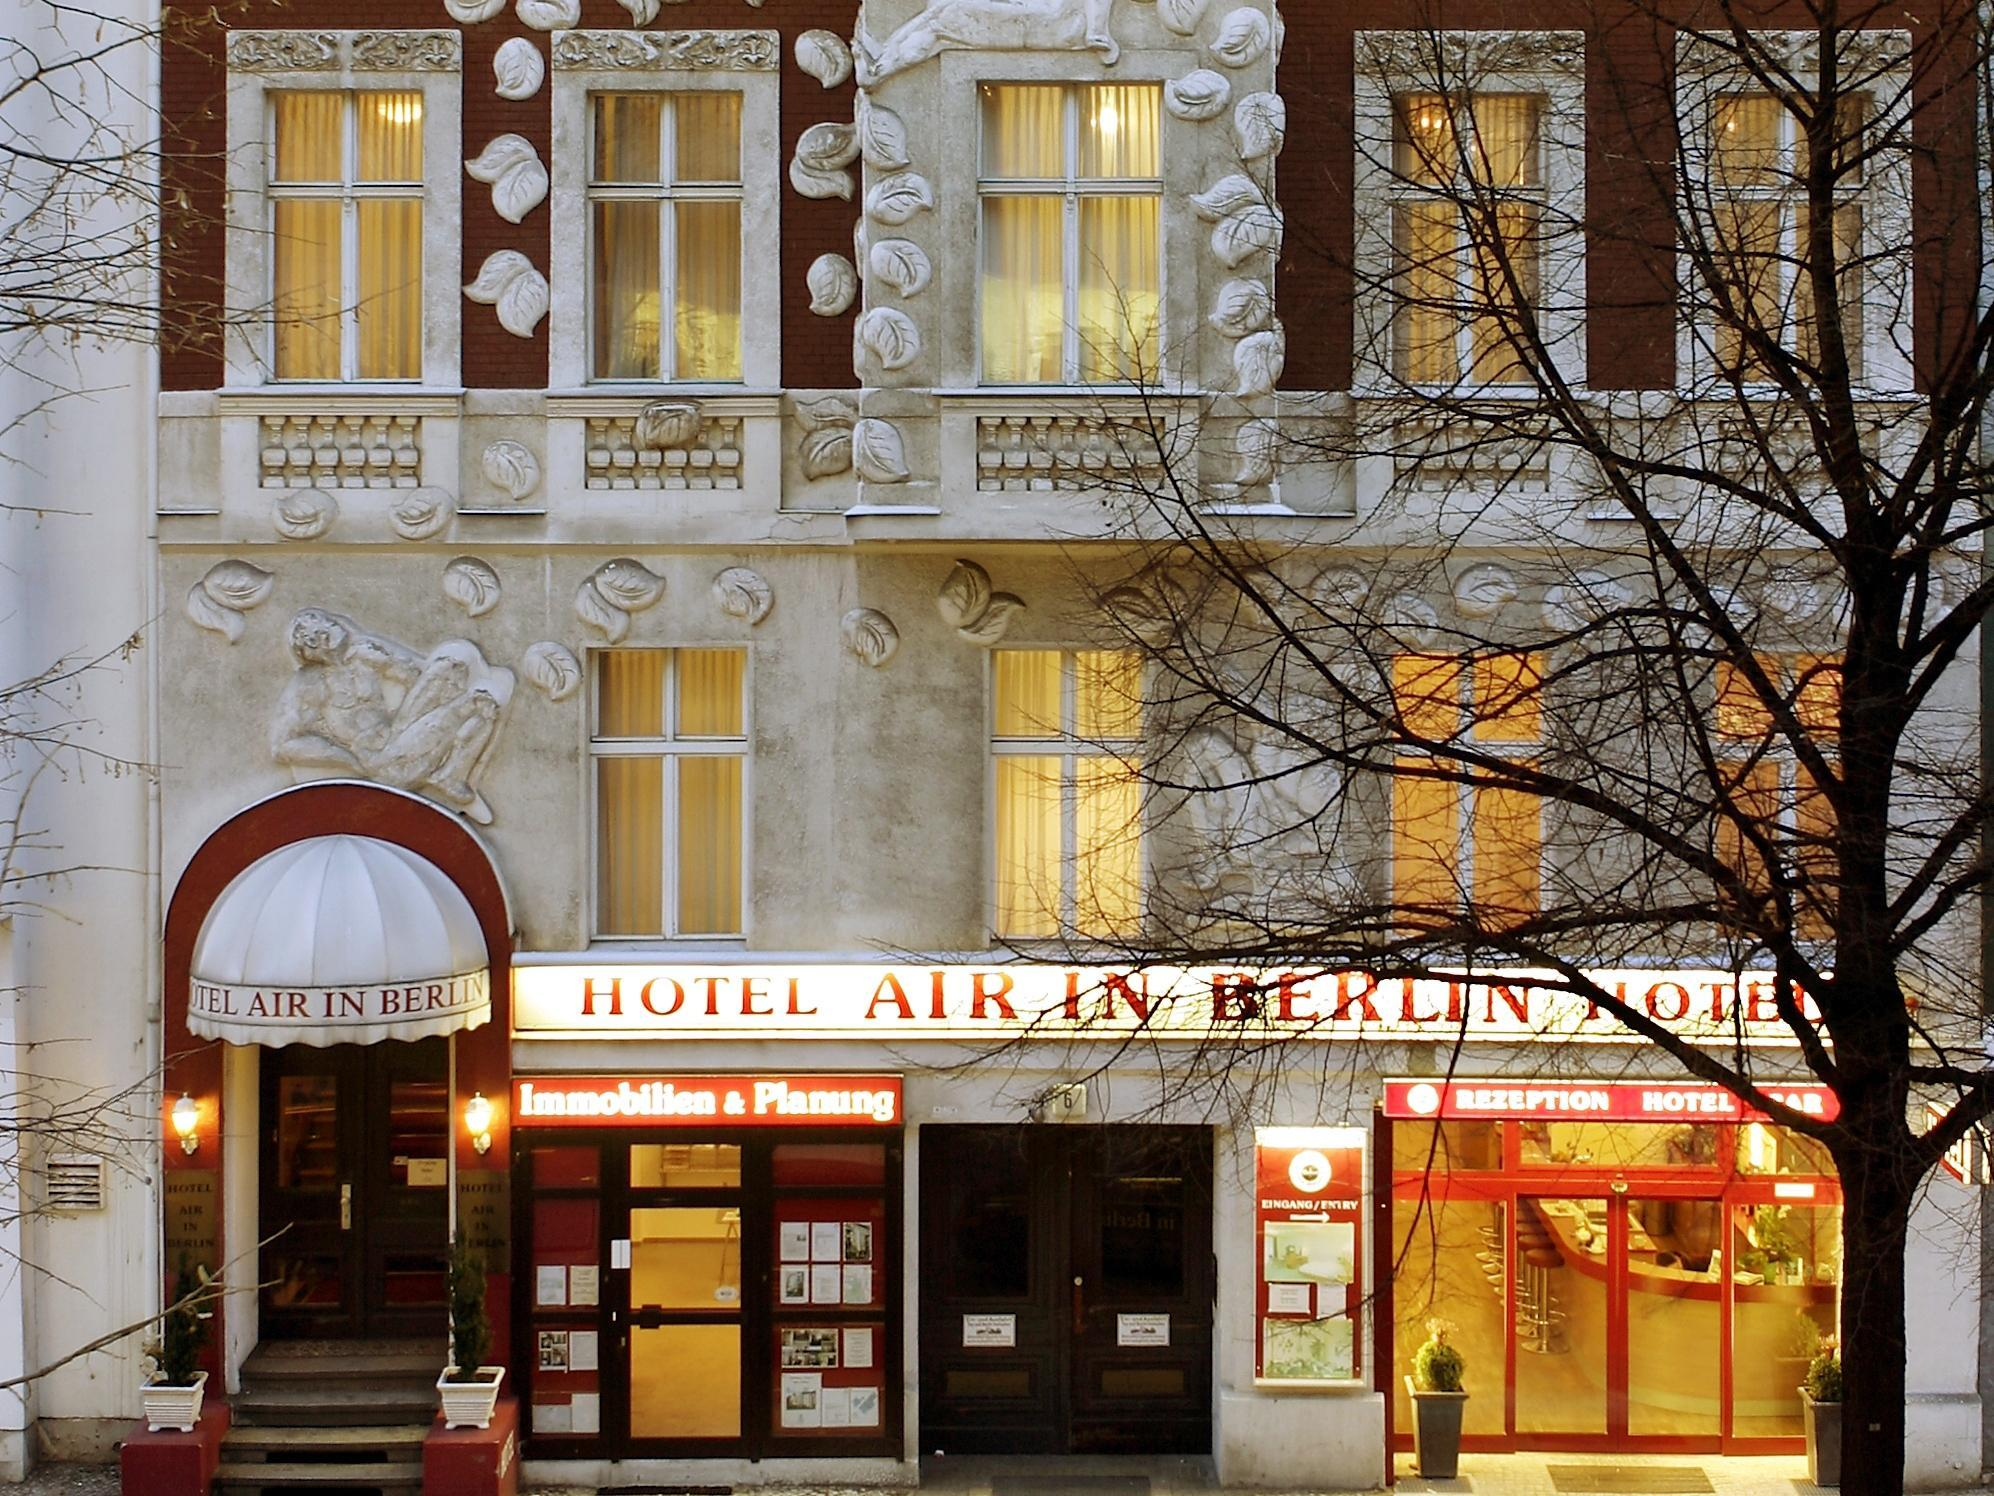 Hotel Air in Berlin ベルリン